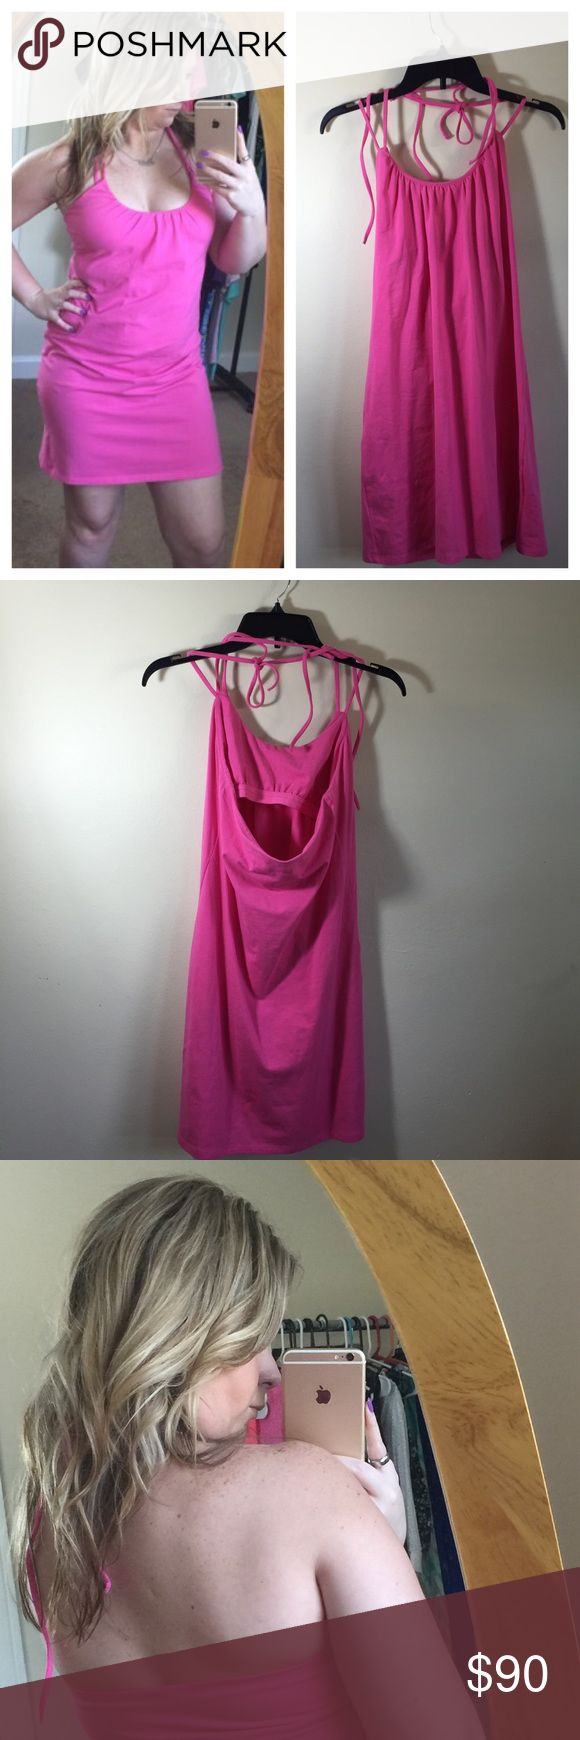 ☀️ LOWEST PRICE Victoria's Secret  halter dress This sexy hot pink dress from Victoria secret features a halter top that ties around the neck twice . Built in bra for a little bit support. Fits a small and medium💁🏼I also do bundles and offers are welcomed 💜 Victoria's Secret Dresses Mini